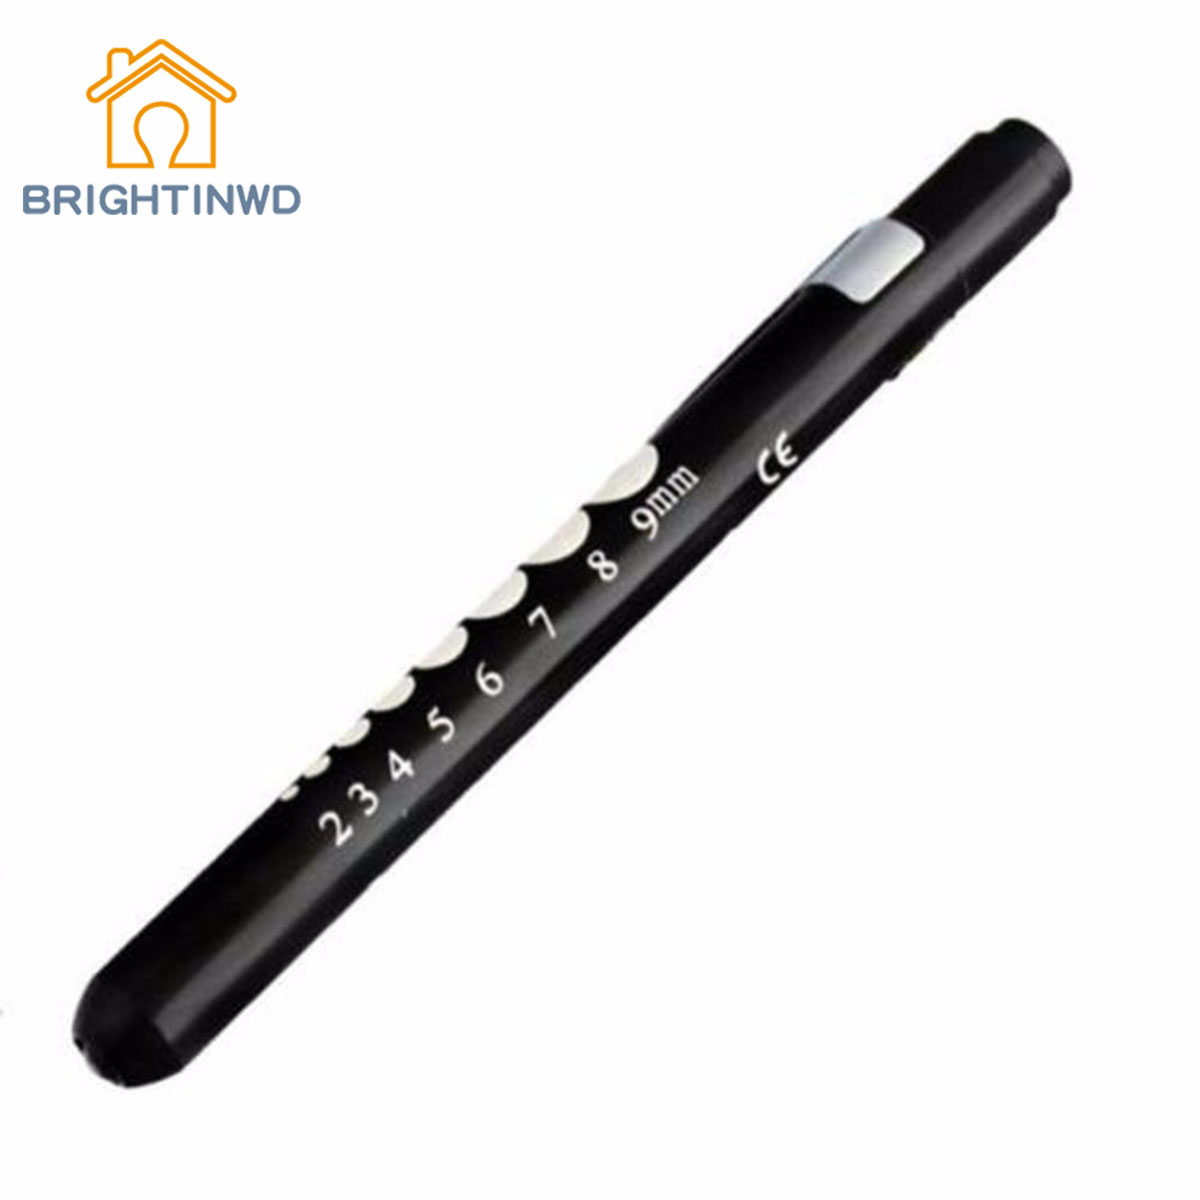 BRIGHTINWD Portable Led Medical Penlight Torch Lamp With Scale Surgical First Aid Nurse Doctor Emergency Pen Light ...